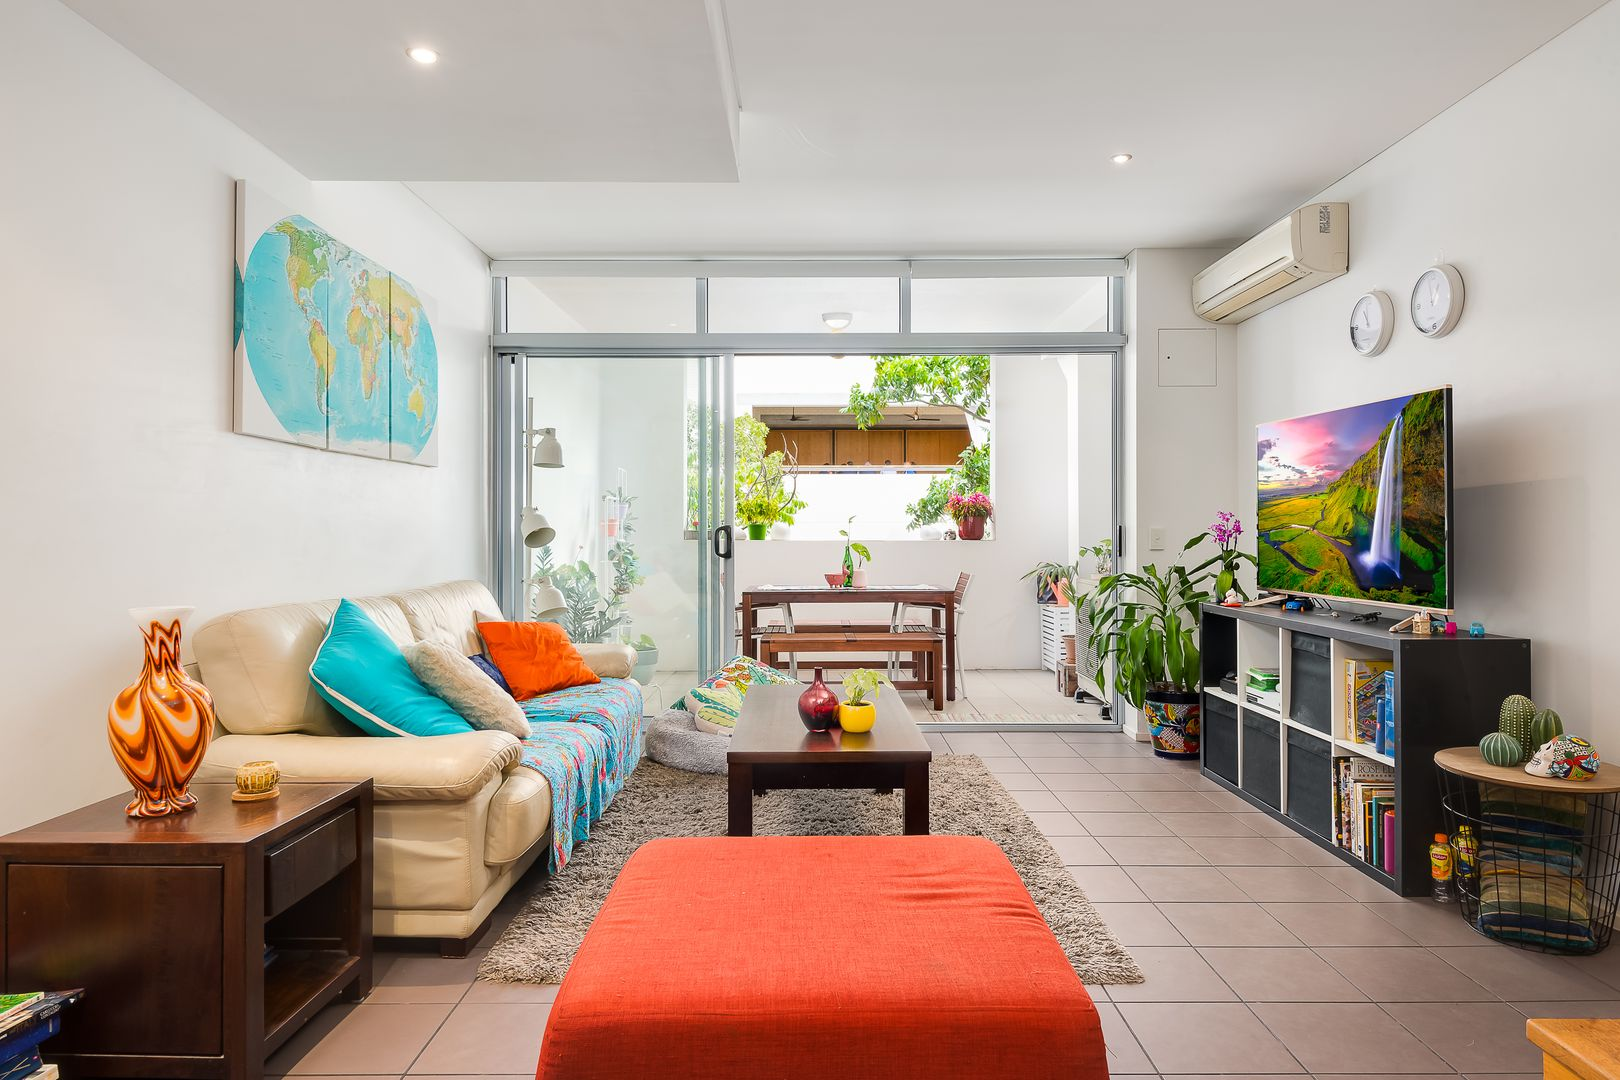 19/9 Doggett Street, Fortitude Valley QLD 4006, Image 0